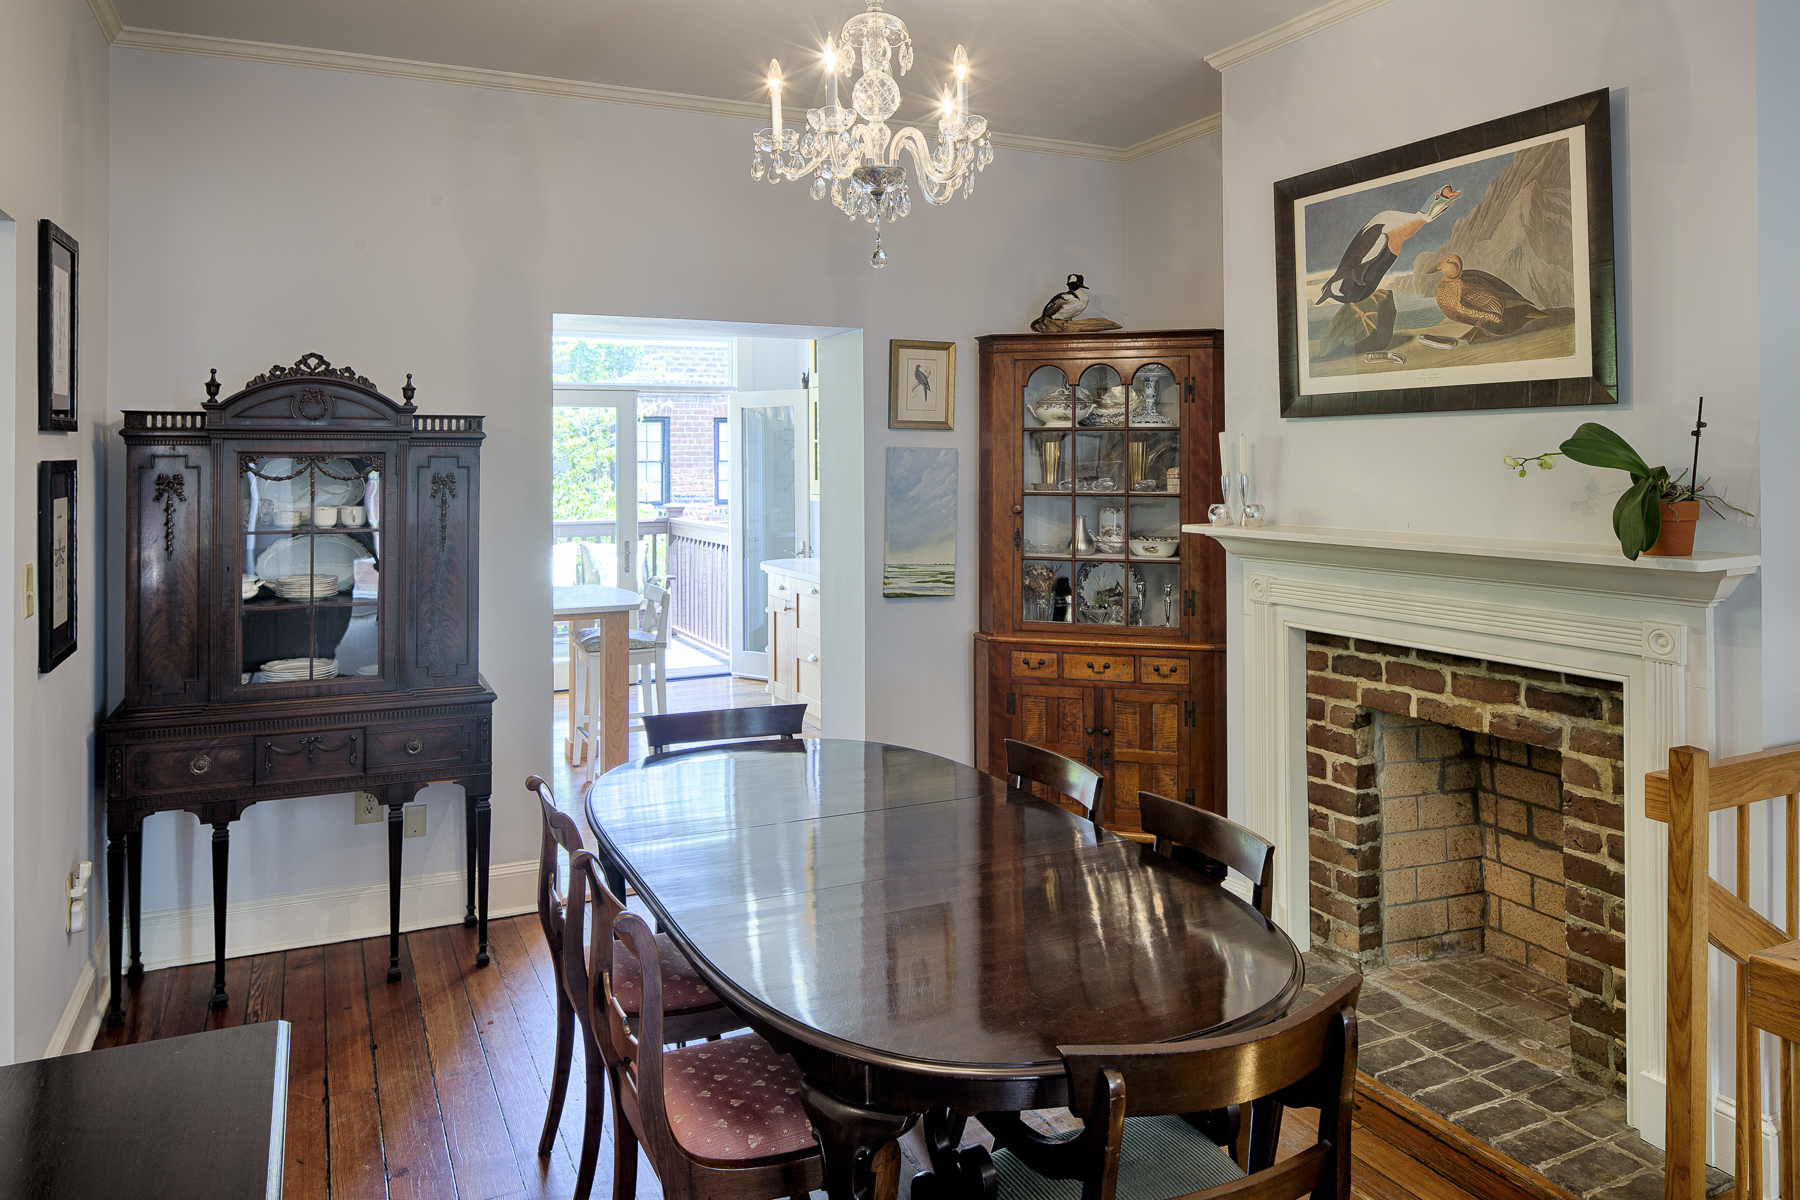 Additional photo for property listing at 220 East Taylor St.  Savannah, Georgia 31401 United States